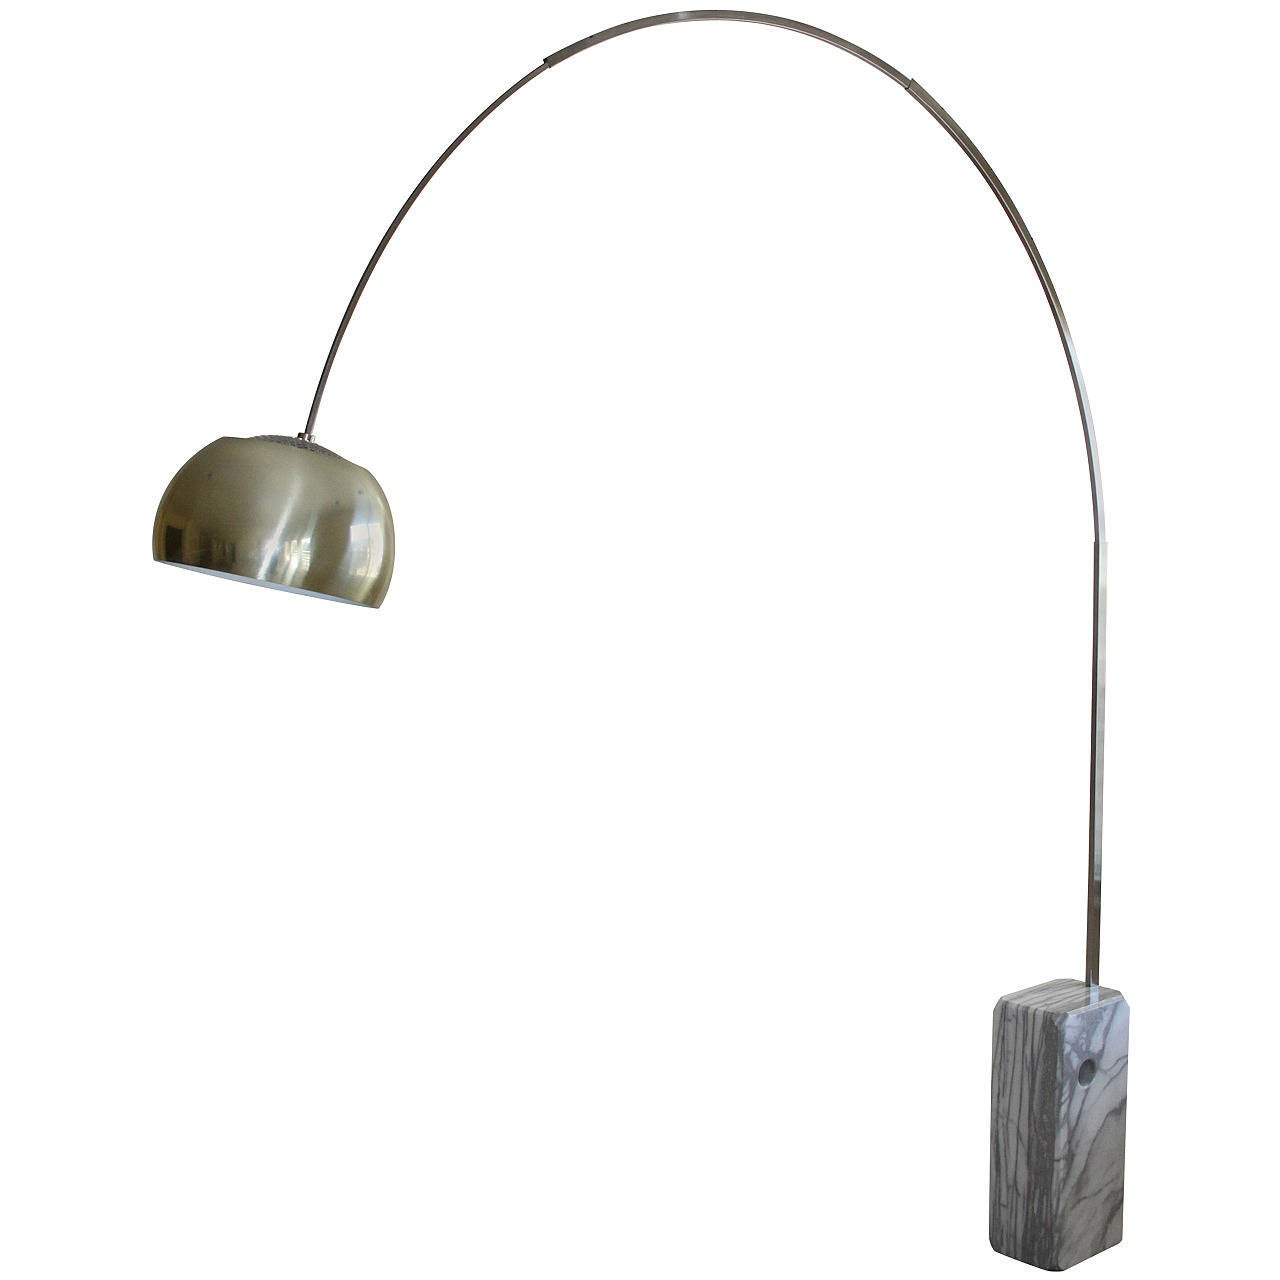 arco lighting. vintage arco floor lamp designed by achille castiglioni in 1962 for flos 1 lighting